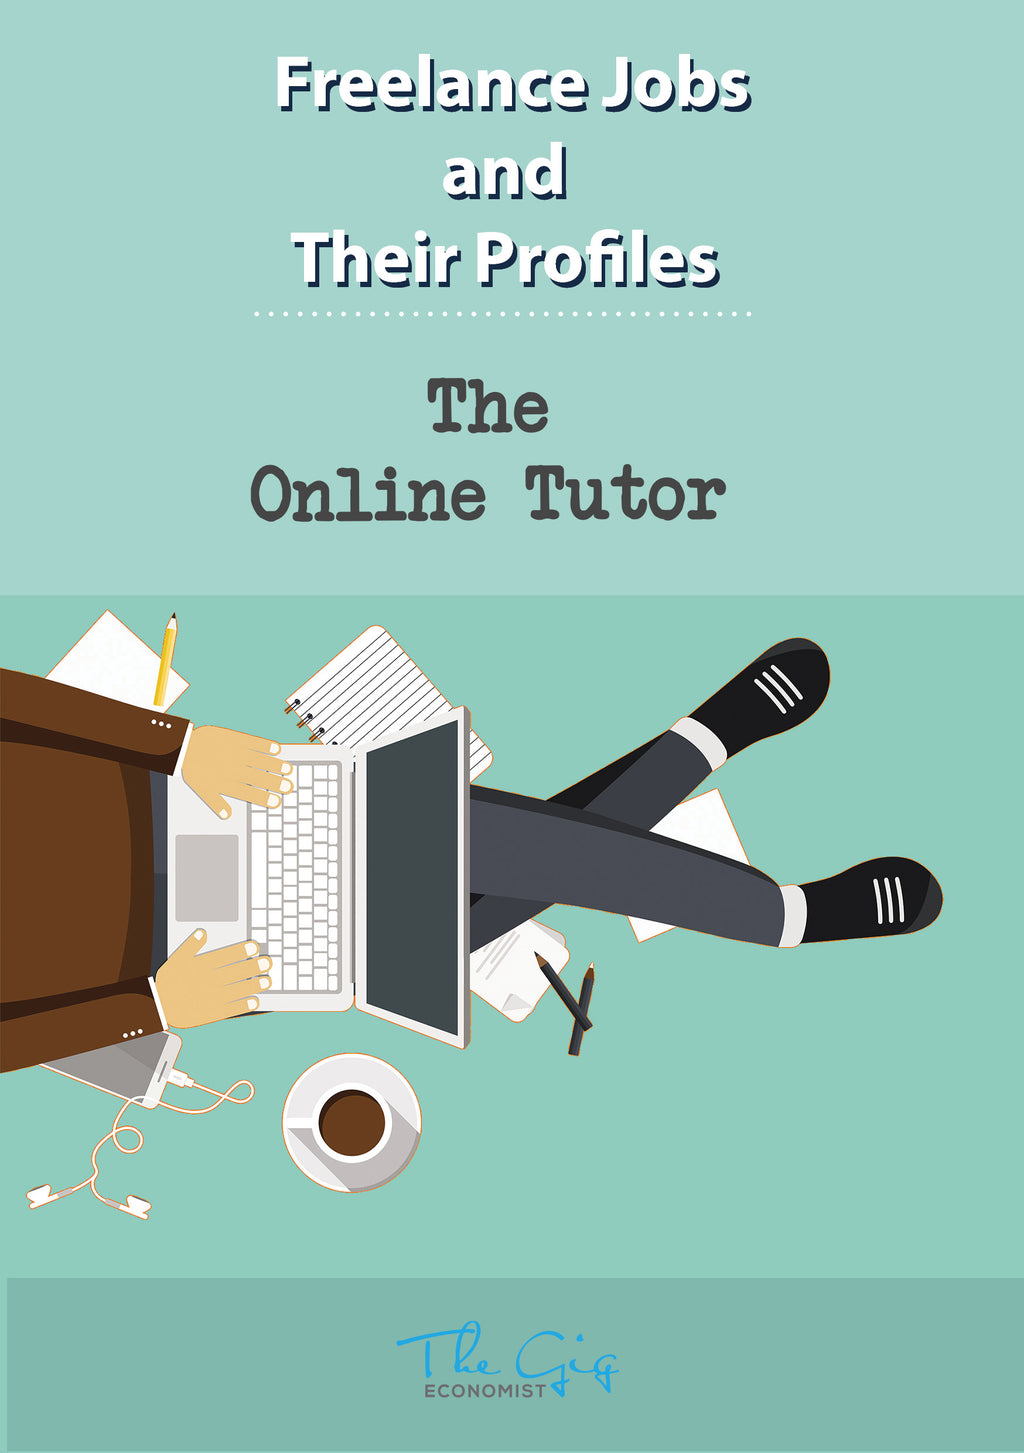 Freelance Online Tutor Job Profile | The Gig Economist